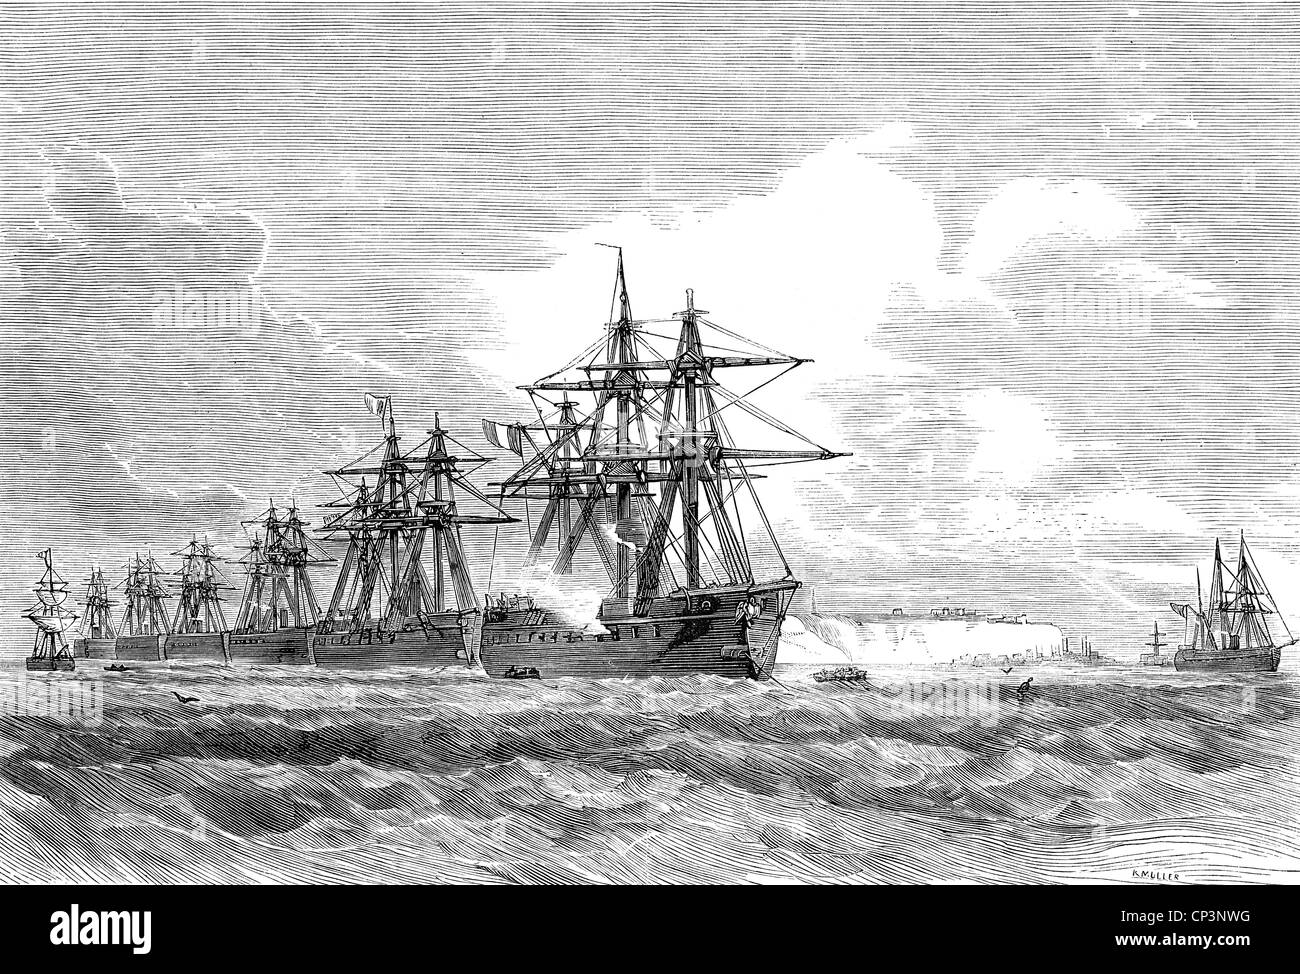 events, Franco-Prussian War 1870 - 1871, naval warfare, French fleet before Heligoland, wood engraving, 1870, French - Stock Image